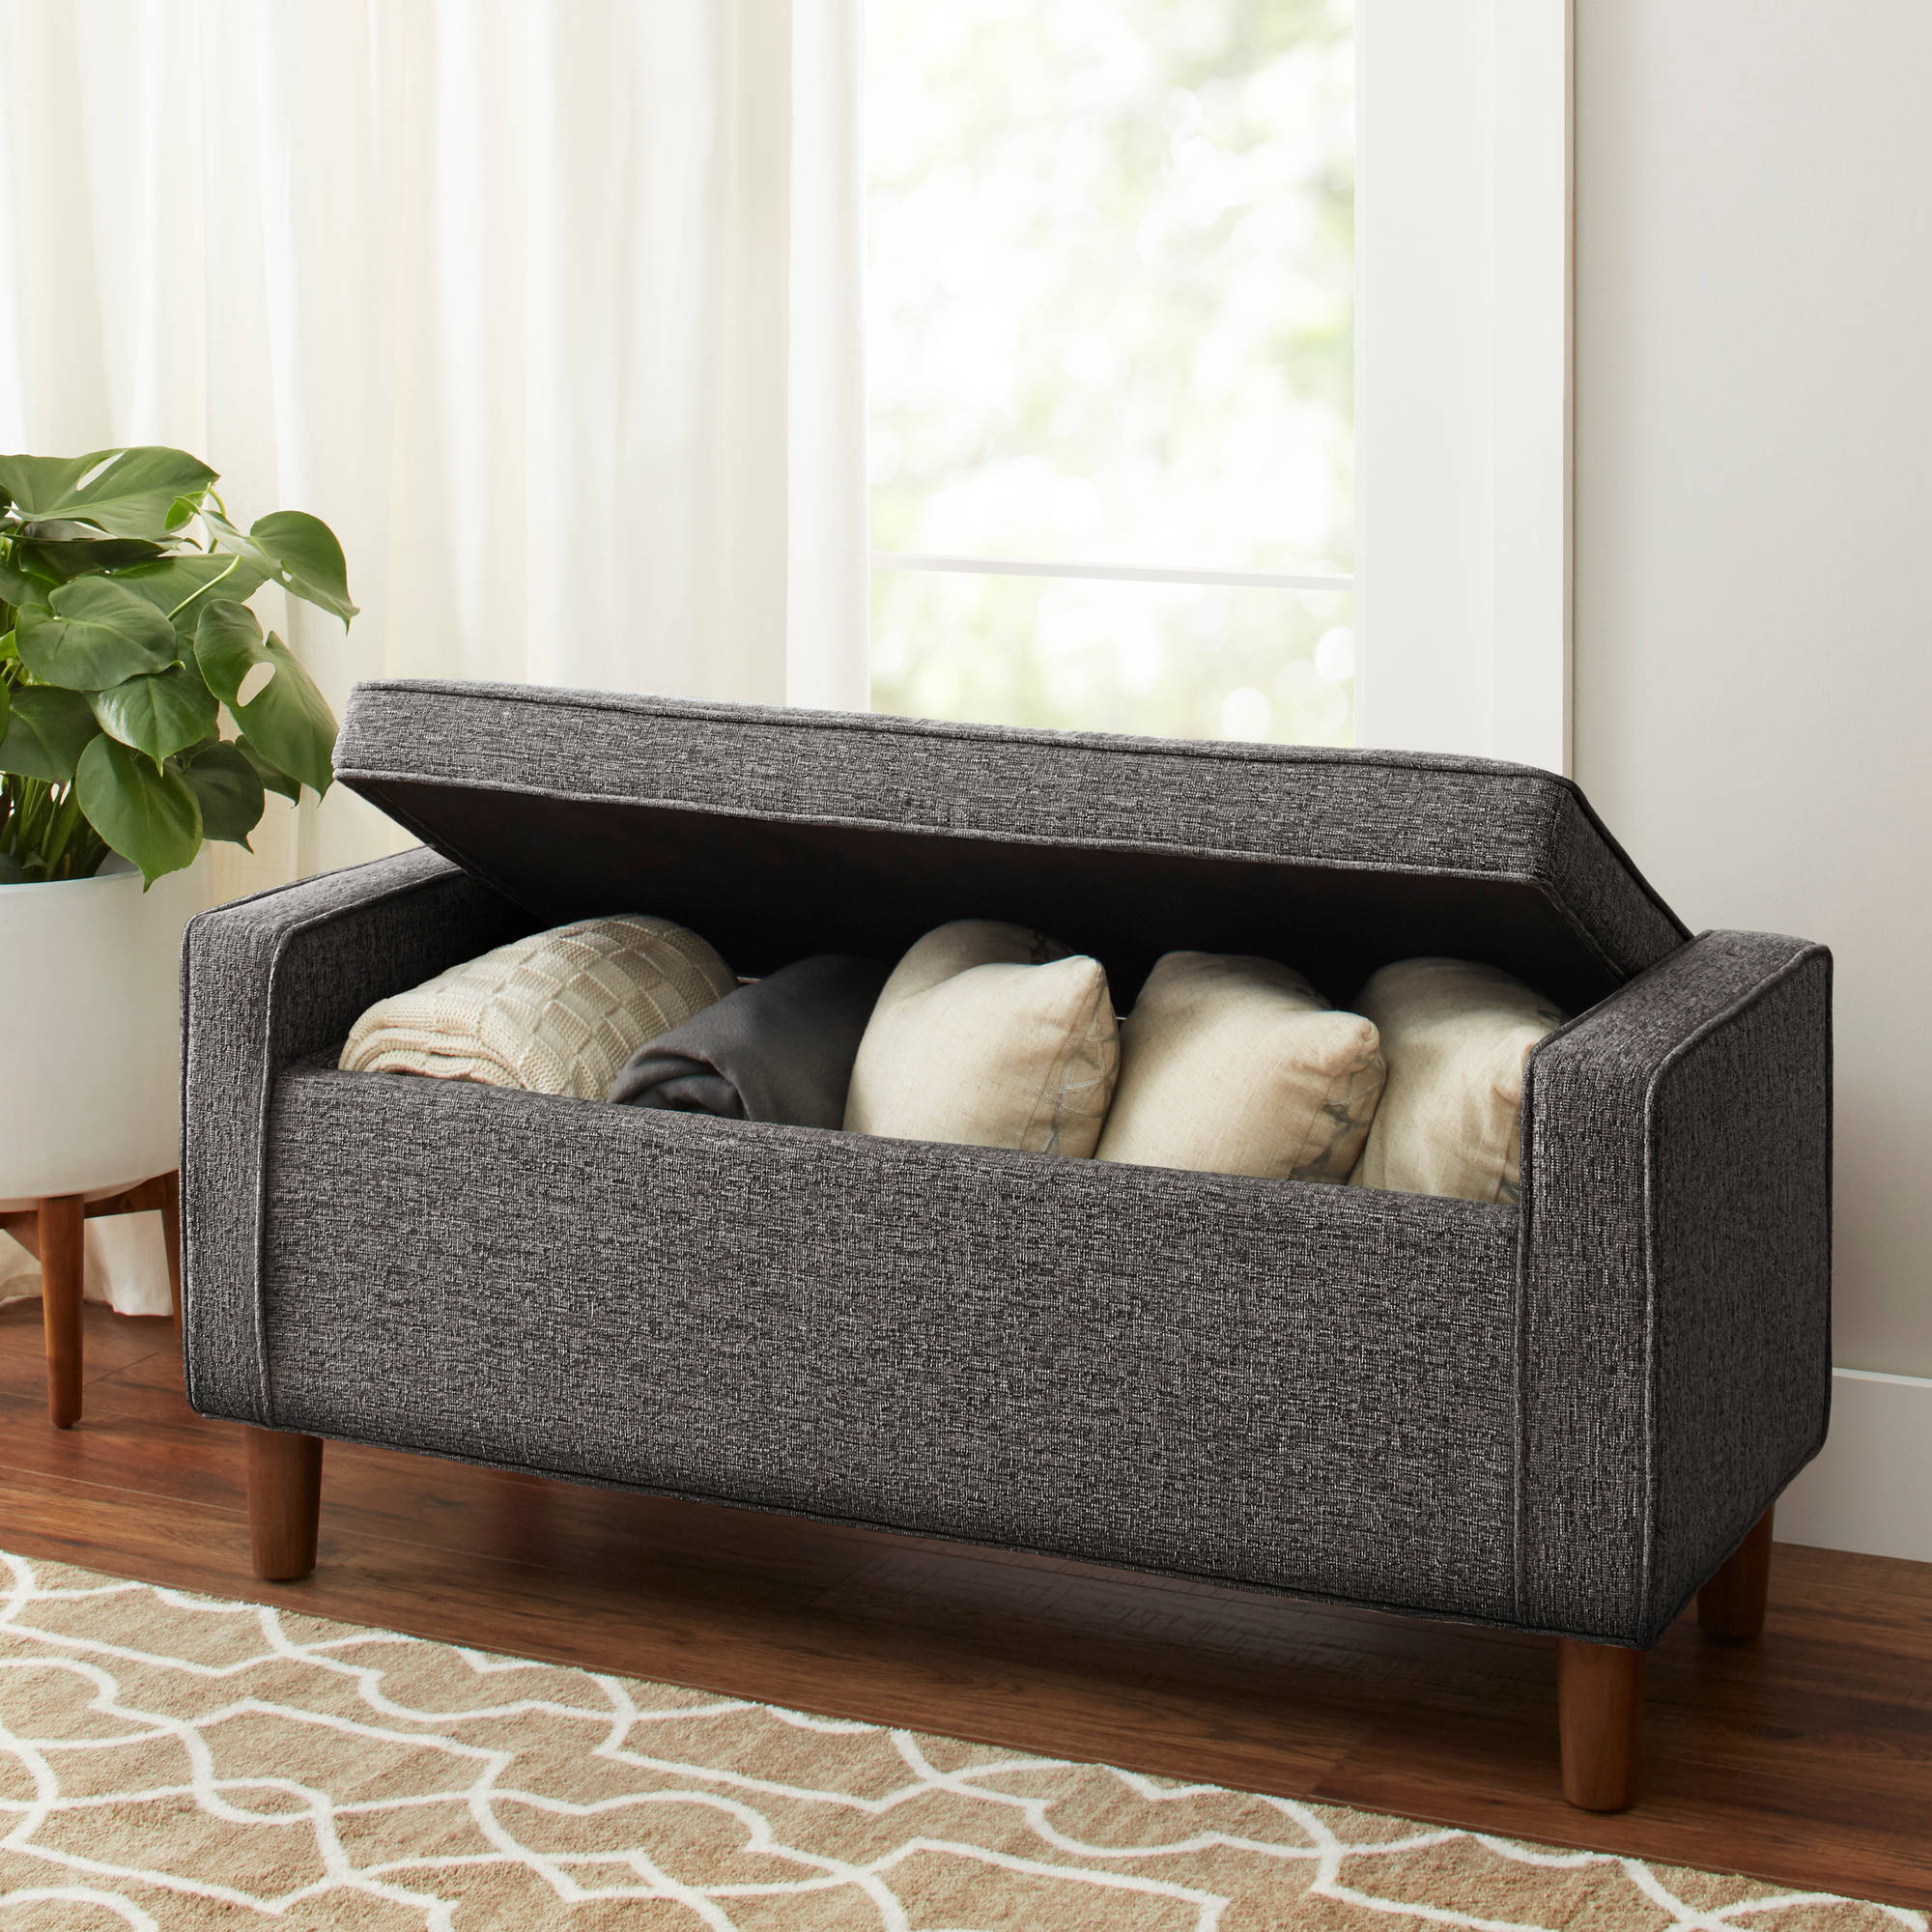 Better Homes And Gardens Flynn Mid Century Modern Upholstered Storage Bench,  Multiple Colors   Walmart.com